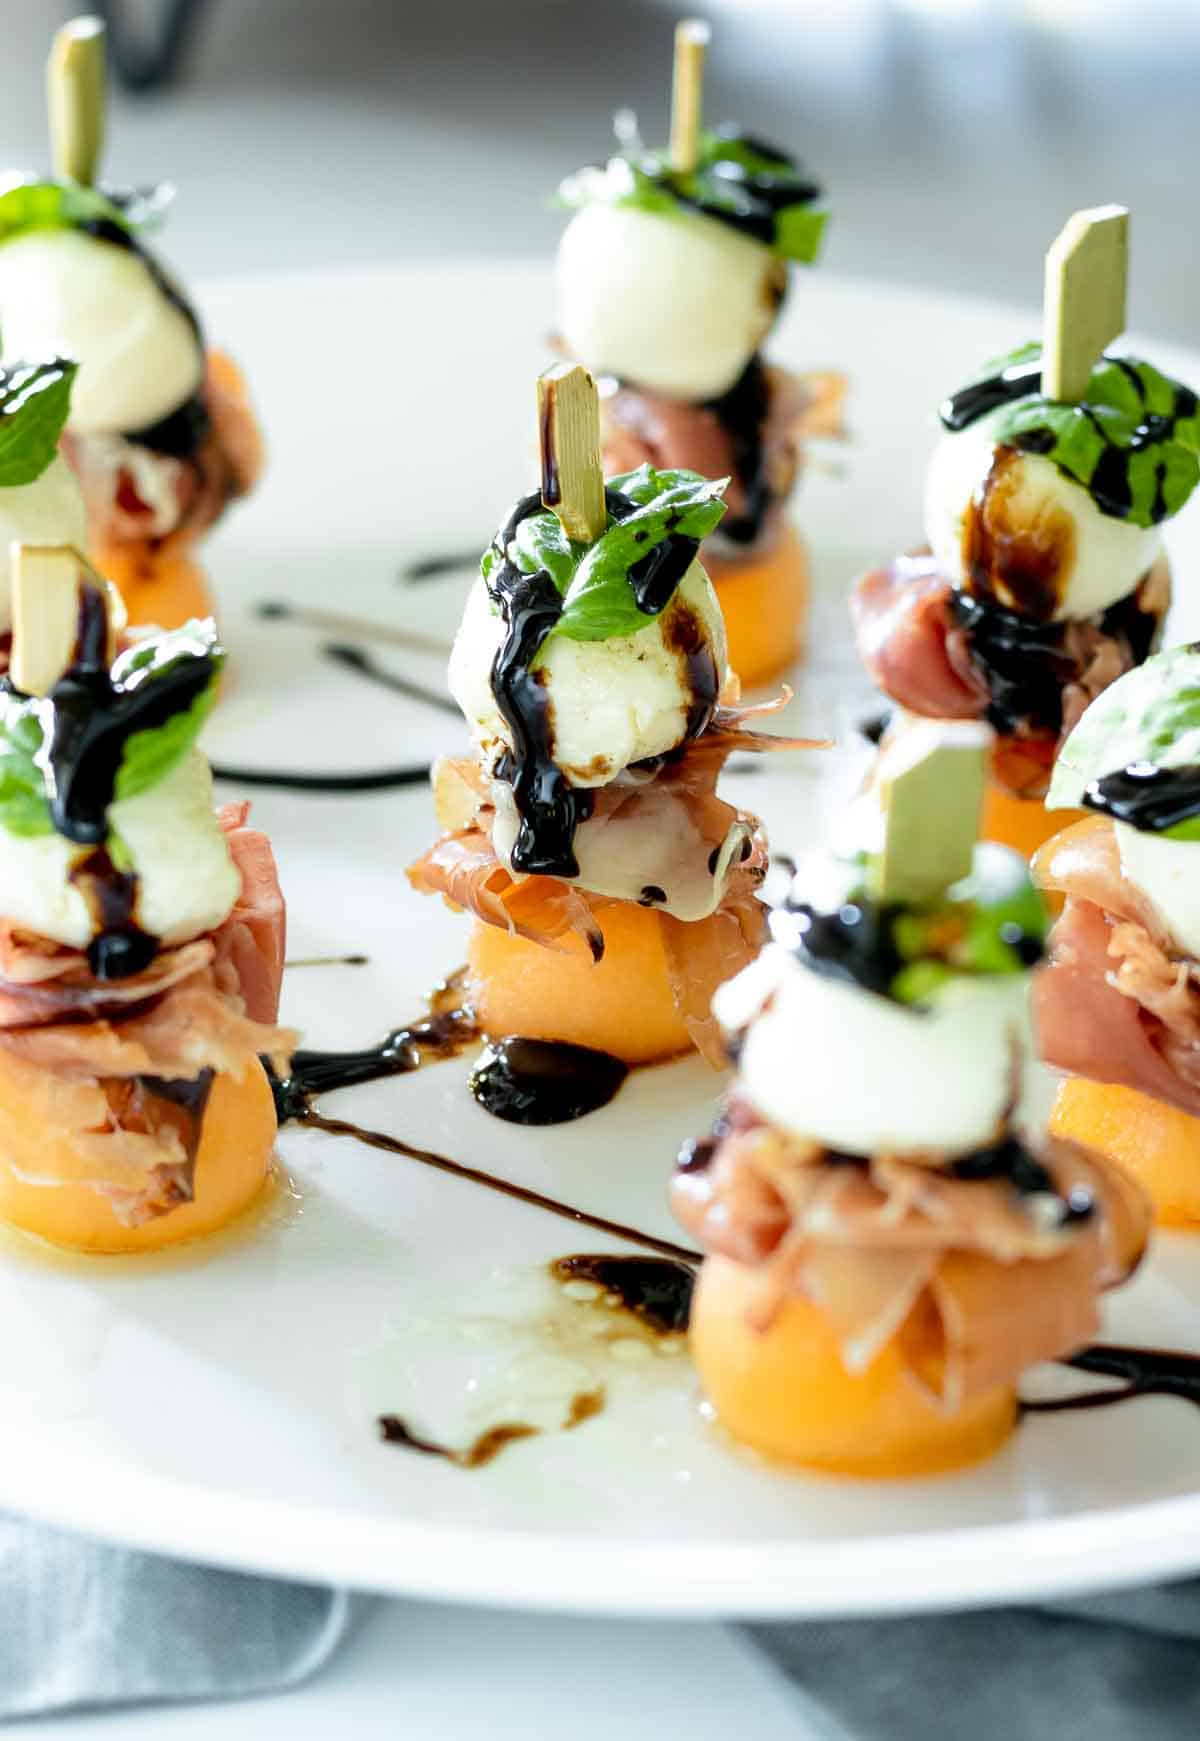 Mozzarella prosciutto and melon skewers with balsamic glaze on a white plate.